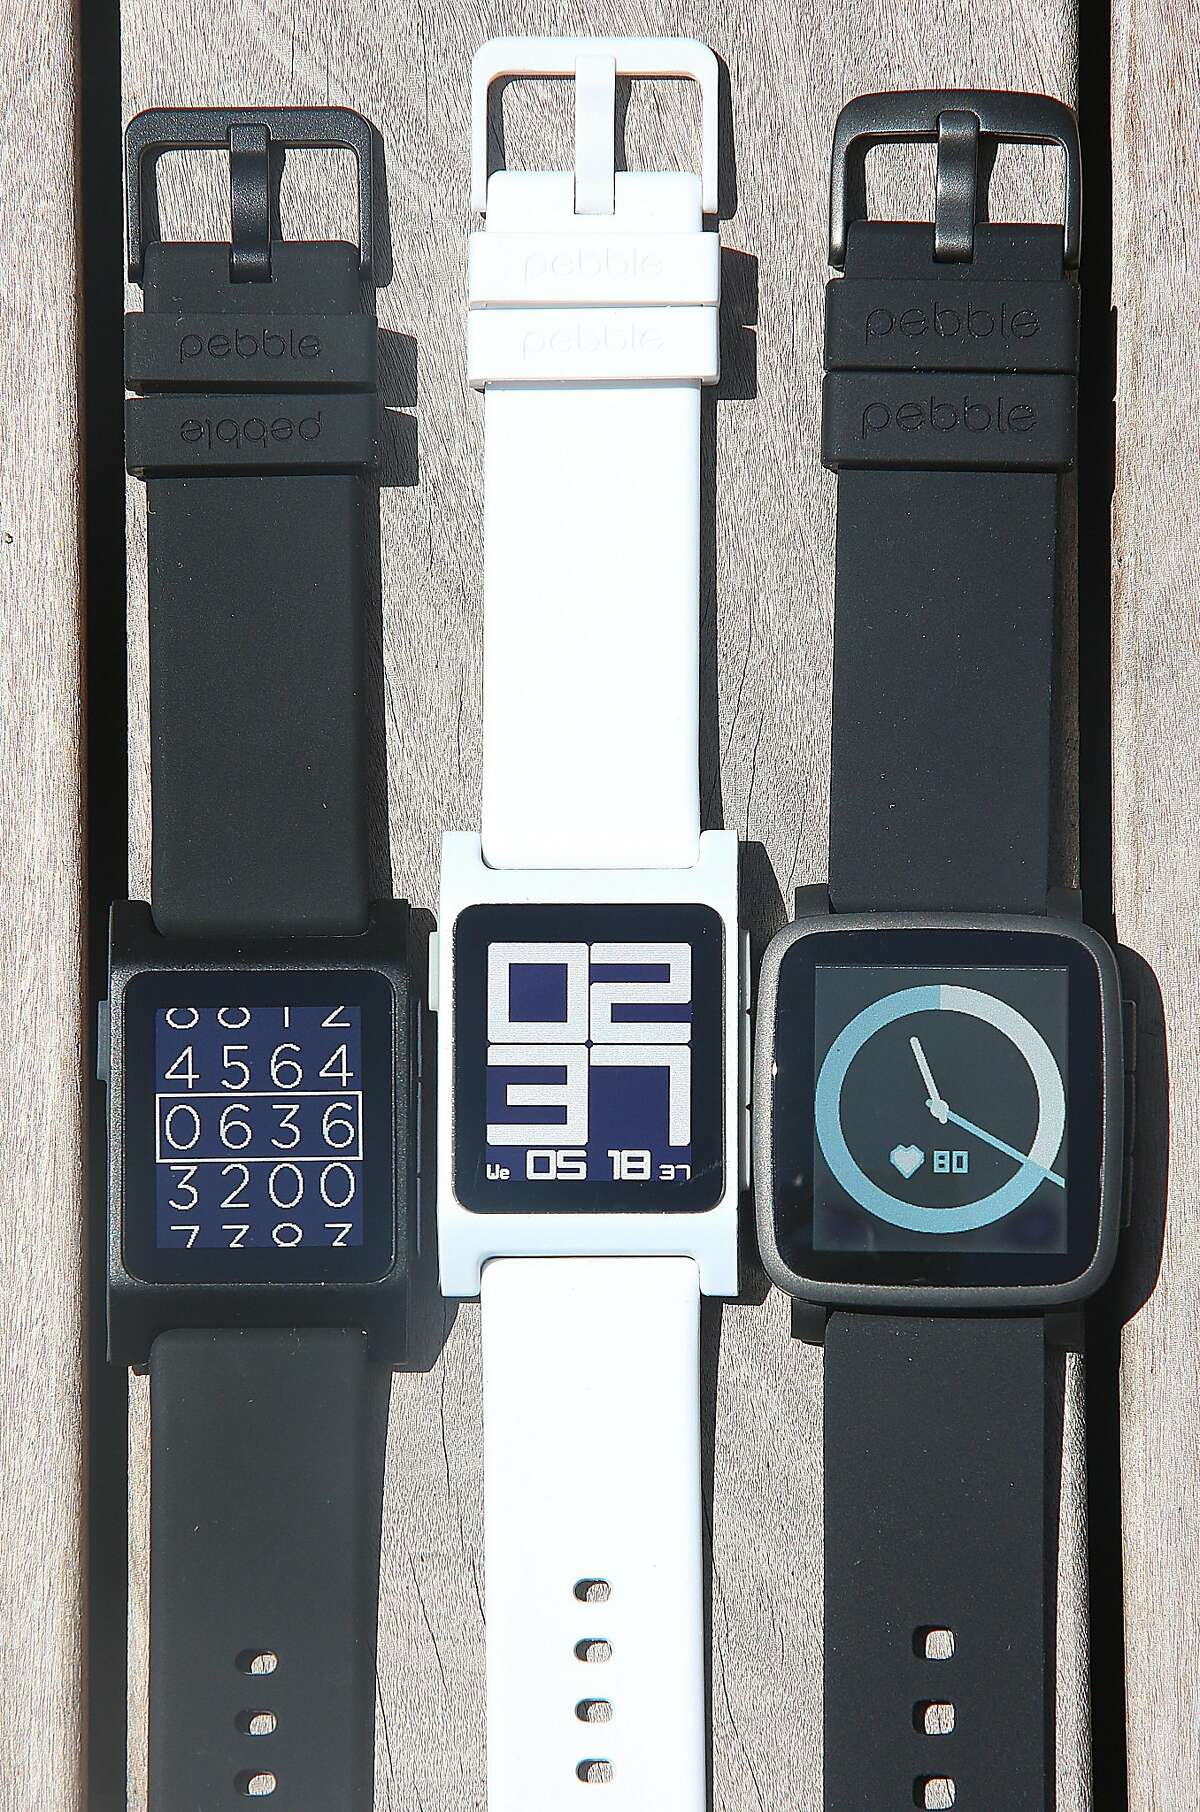 At left and middle are Pebble 2 watches and a Pebble Time 2 watch seen at right at Pebble in Redwood City, Calif., on Wednesday, May 18, 2016.